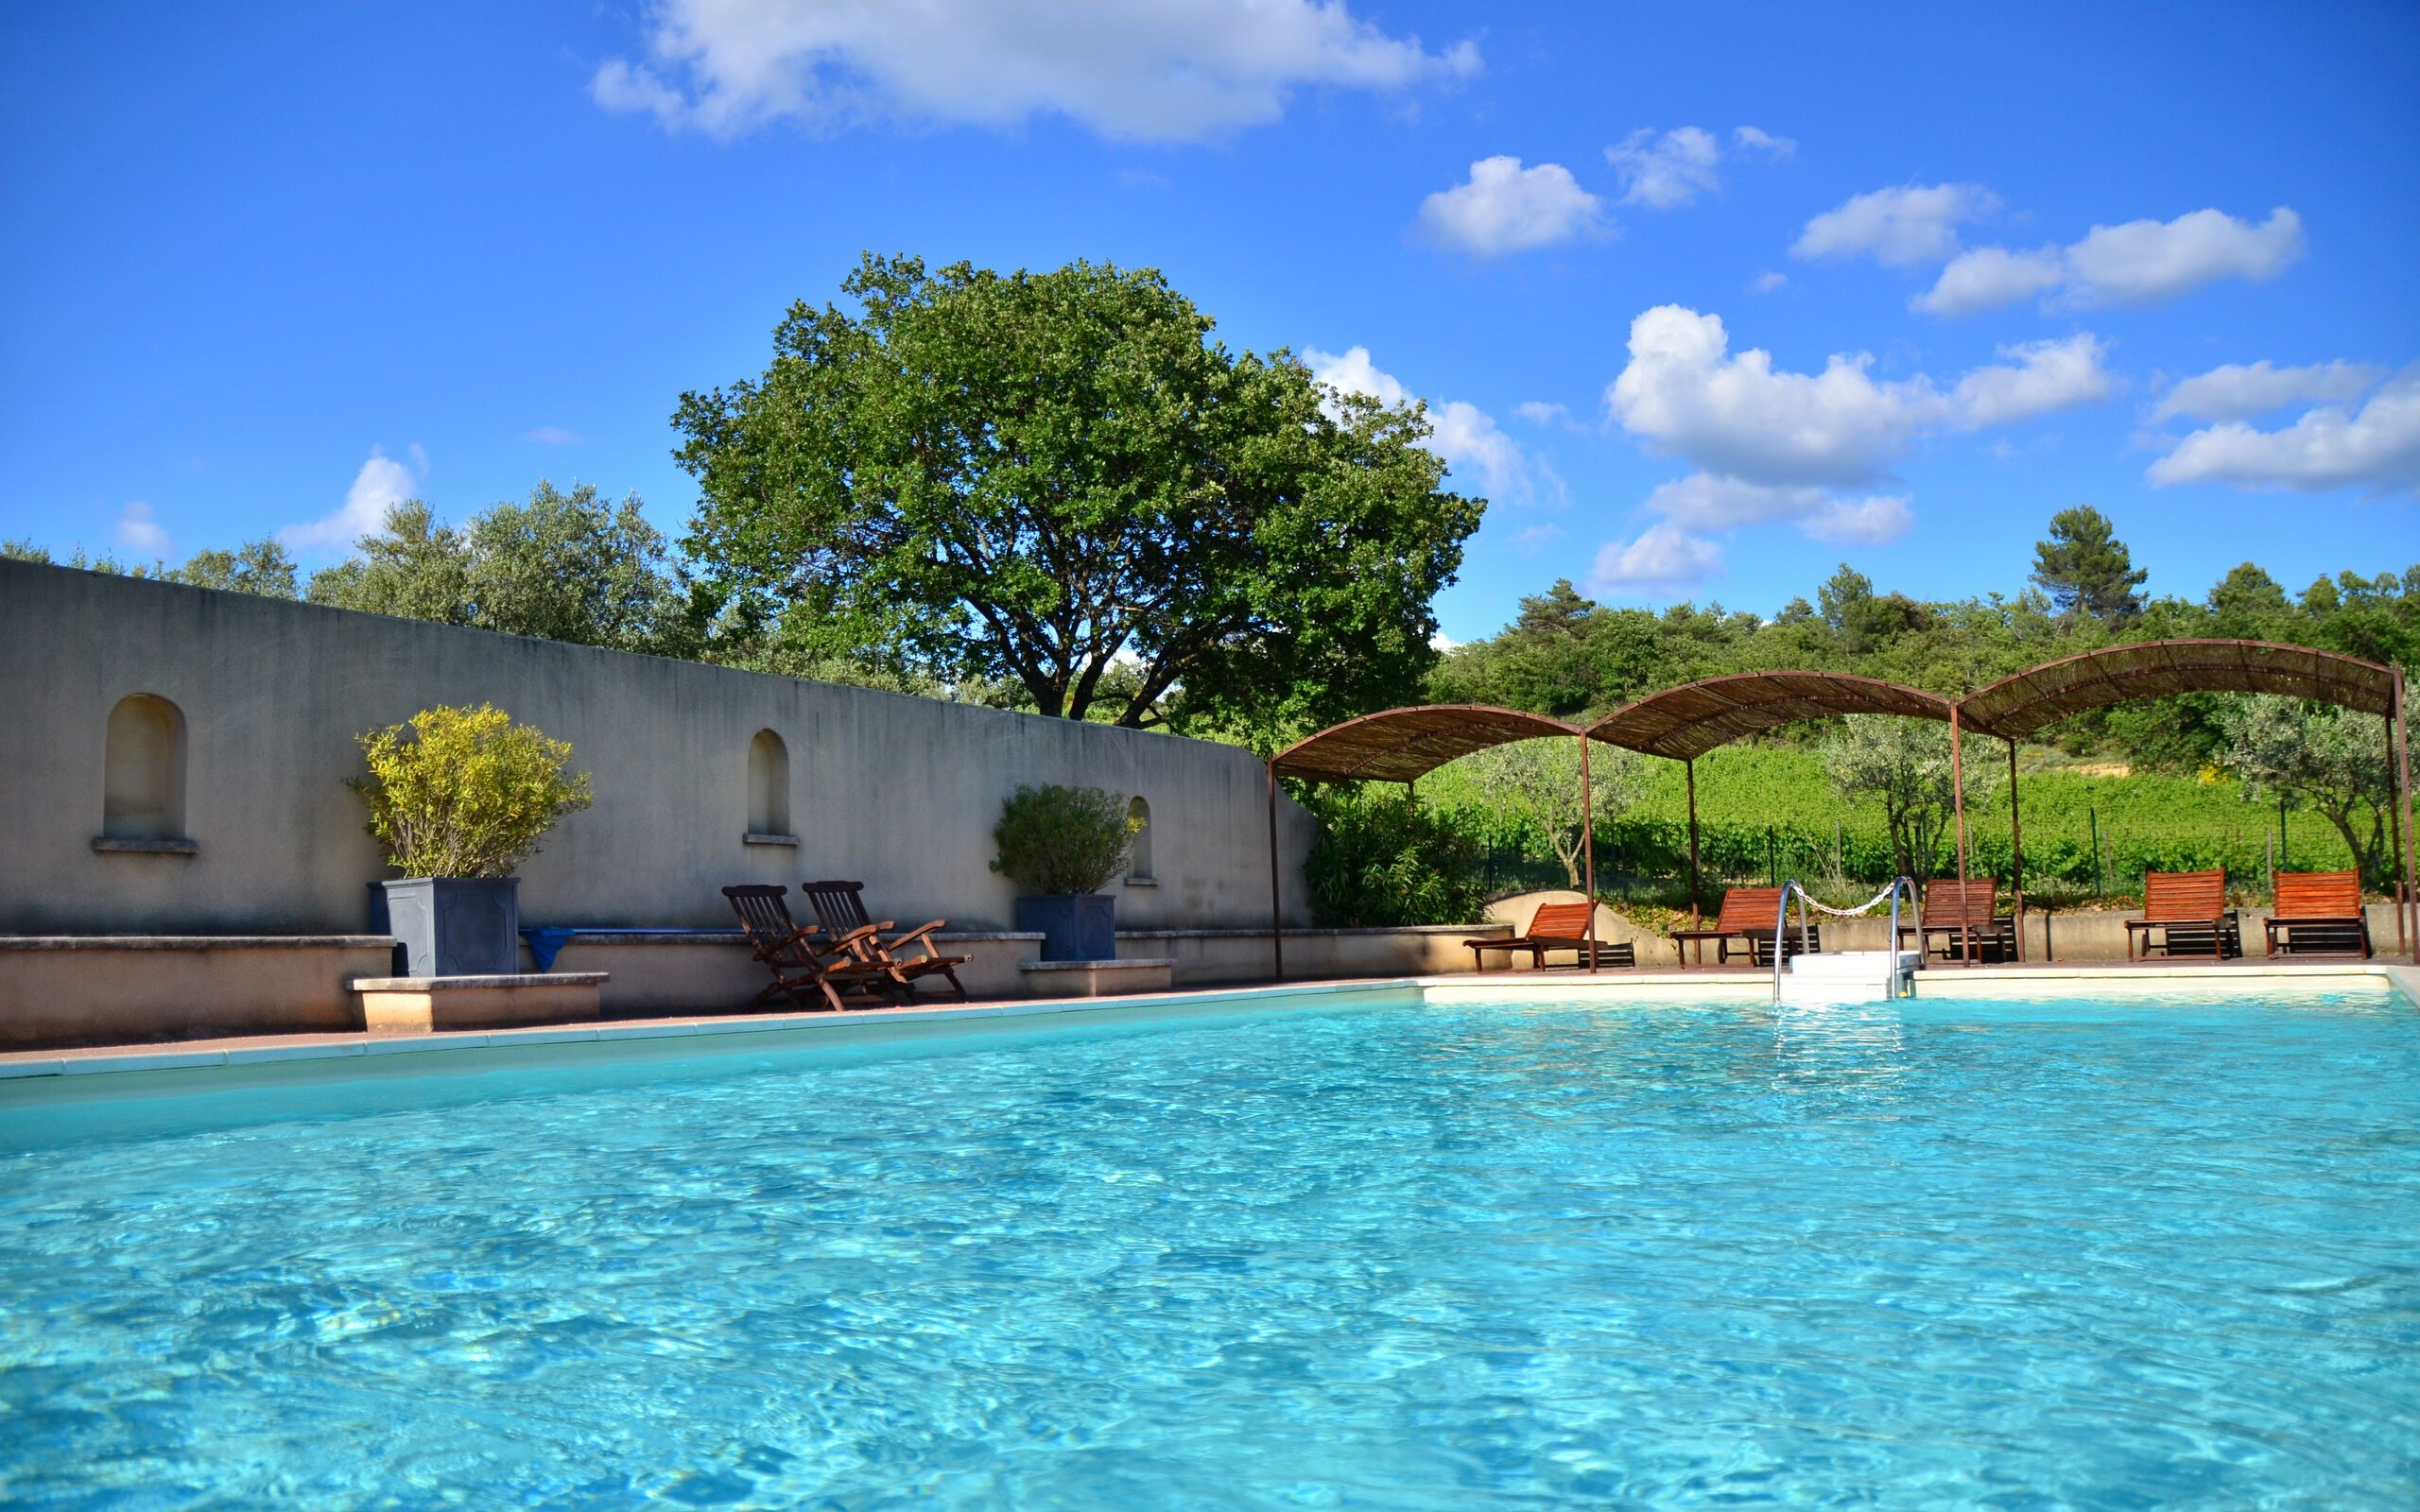 provence-pension-pool